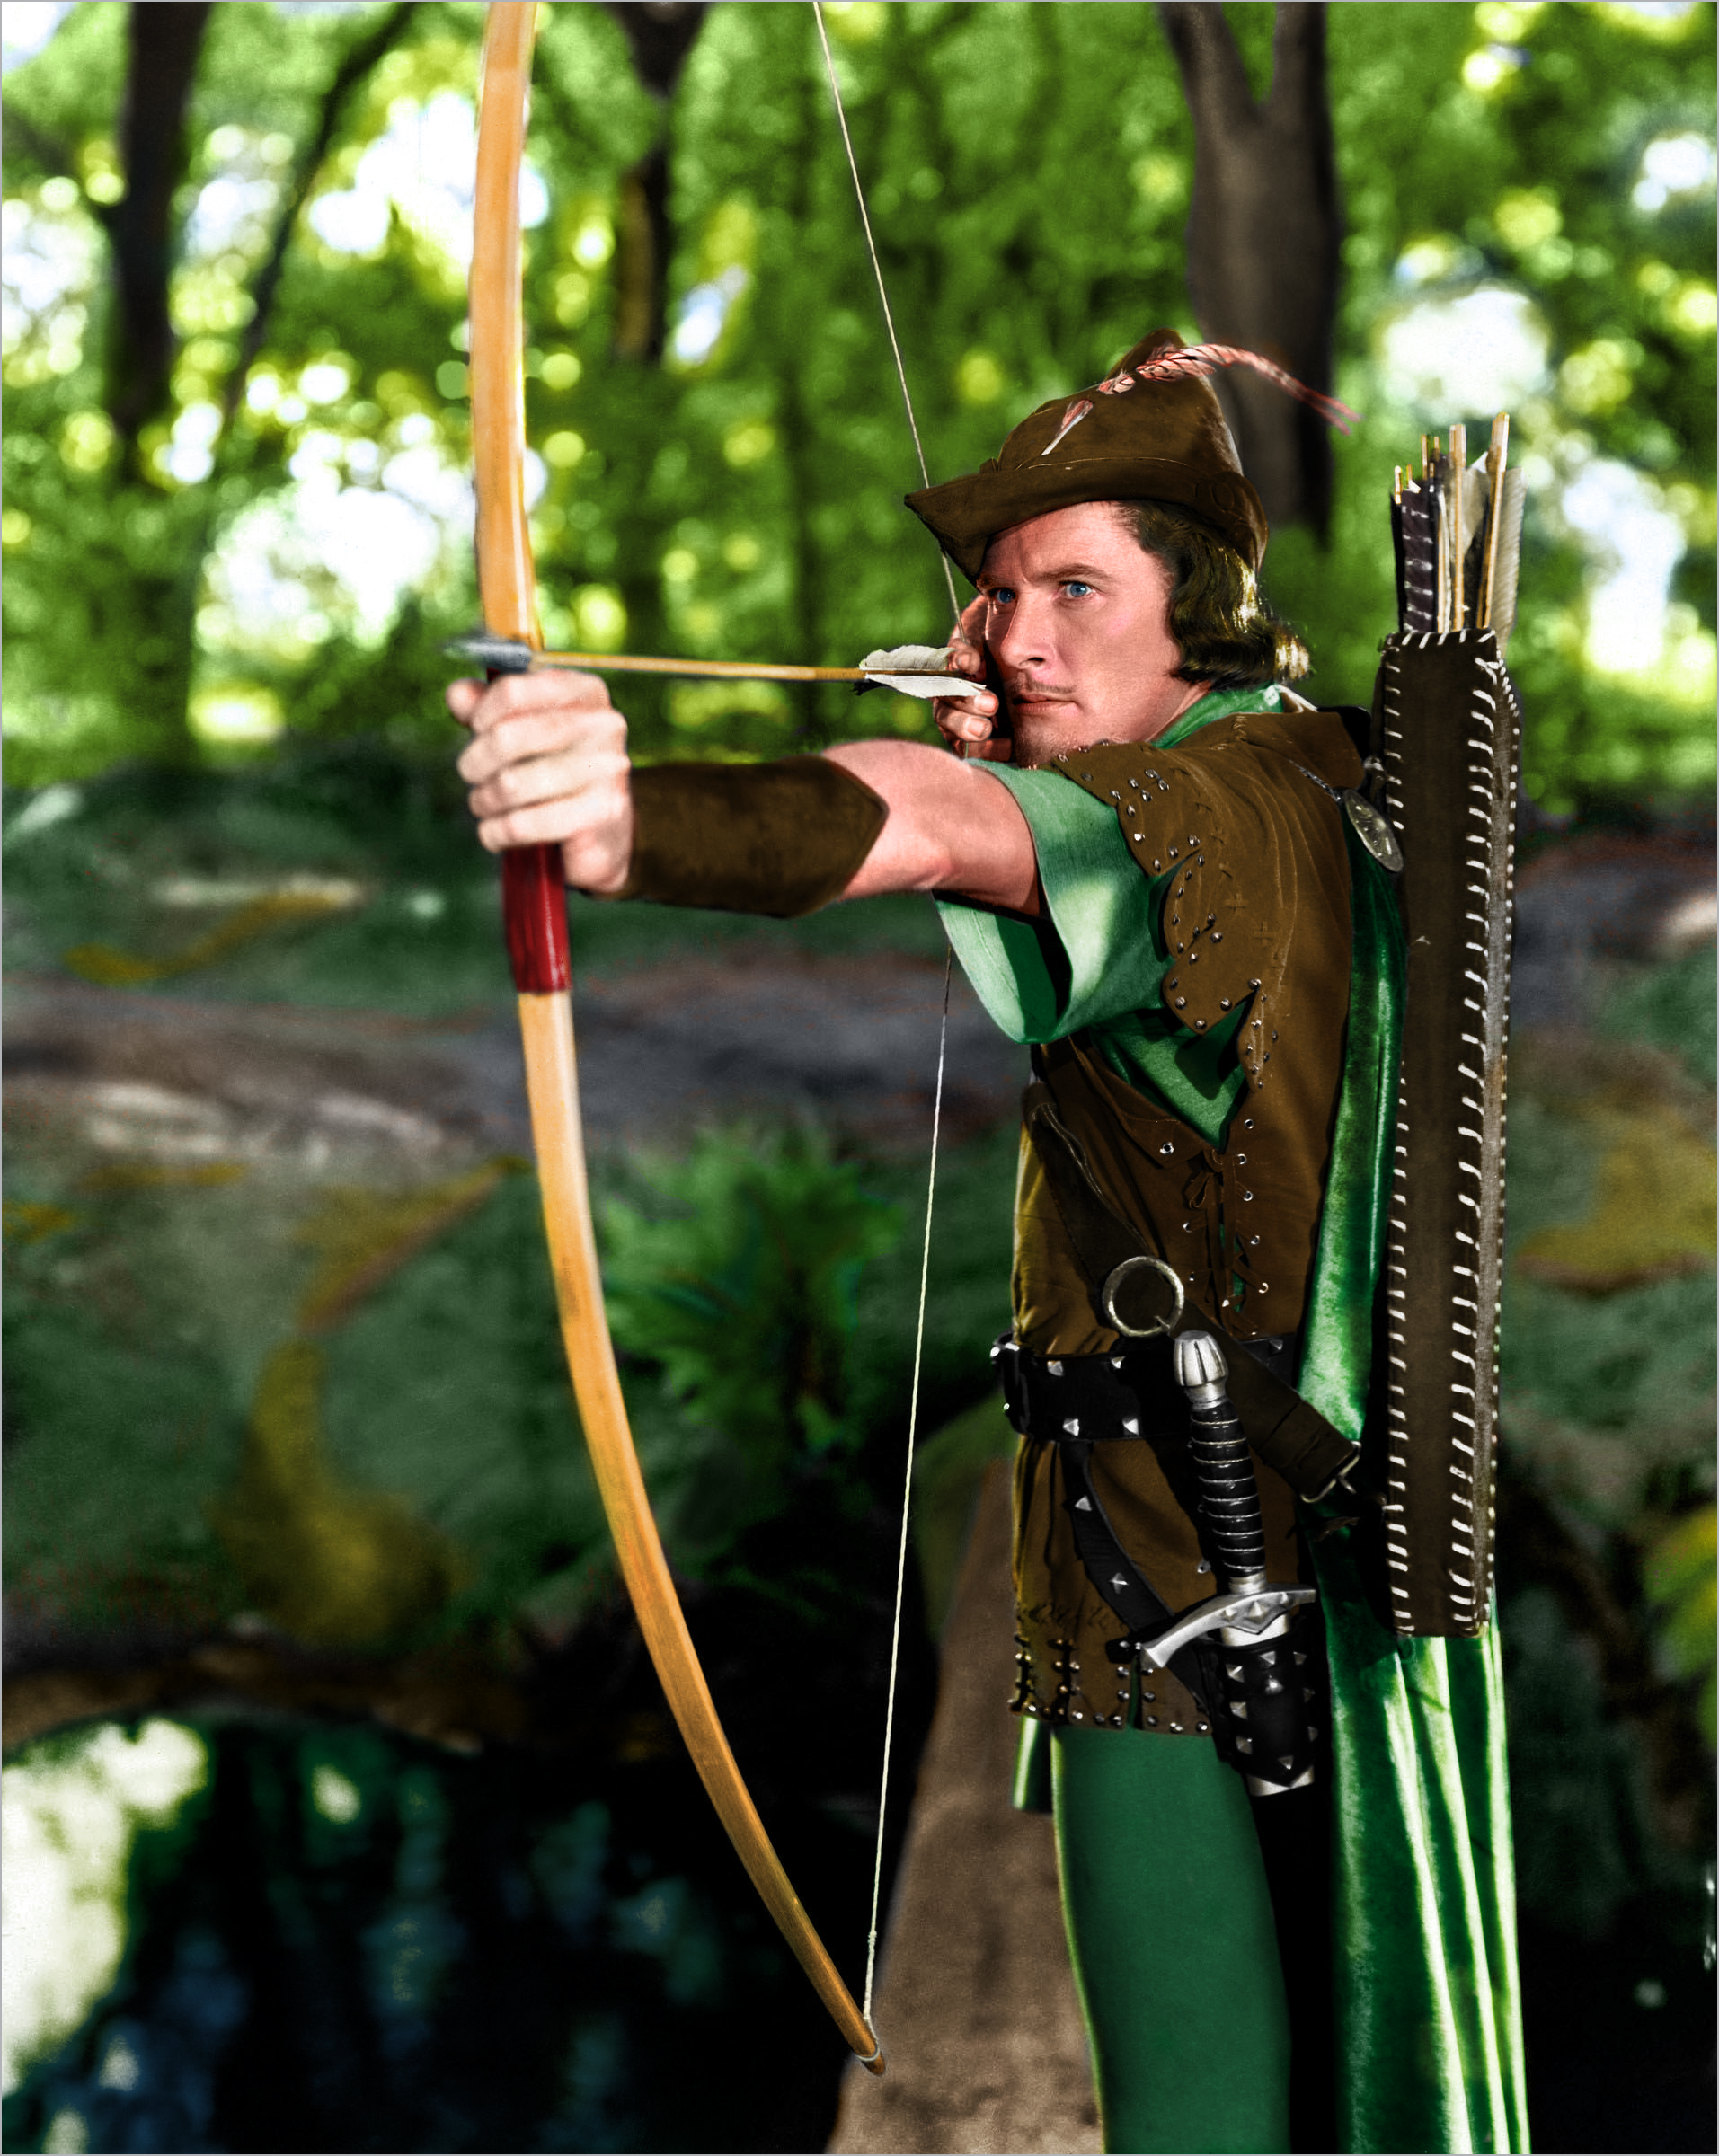 Robin Hood High Quality Background on Wallpapers Vista